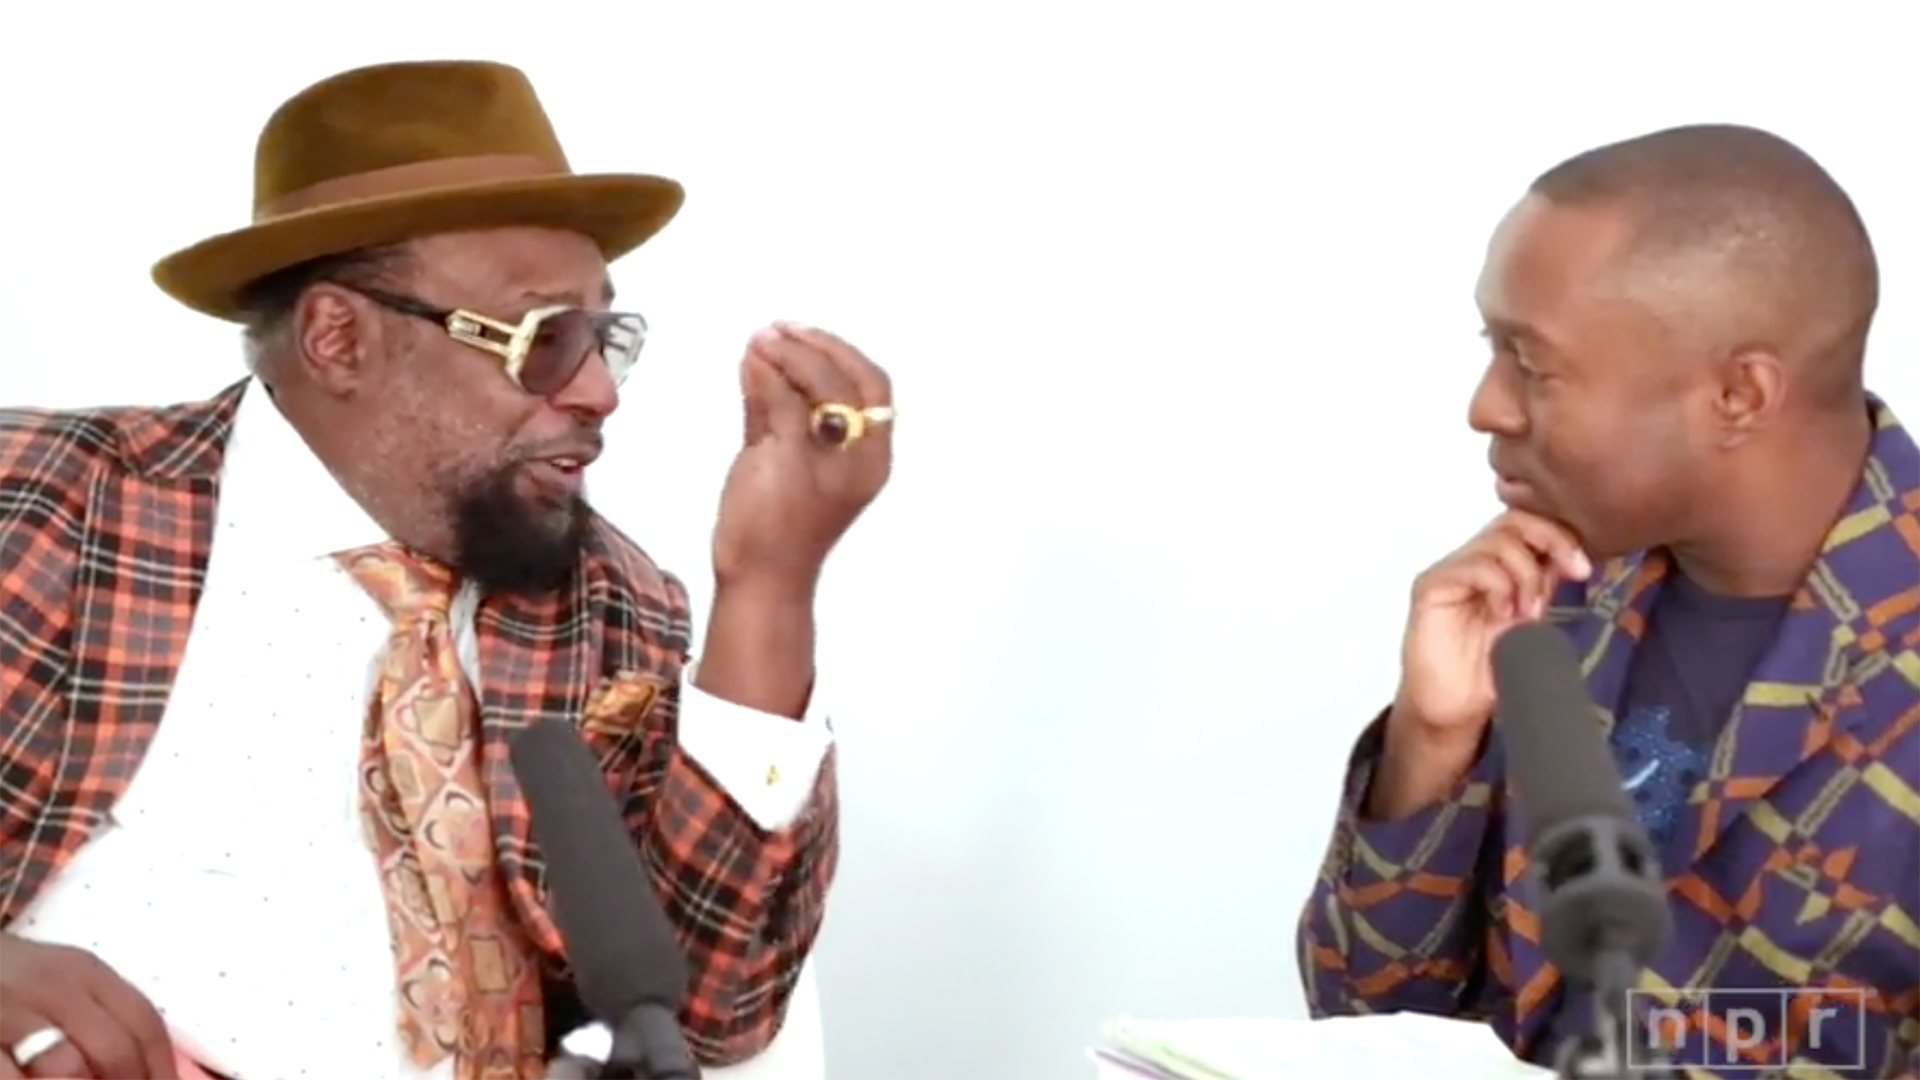 NPR Radio interview with George Clinton - Official Website